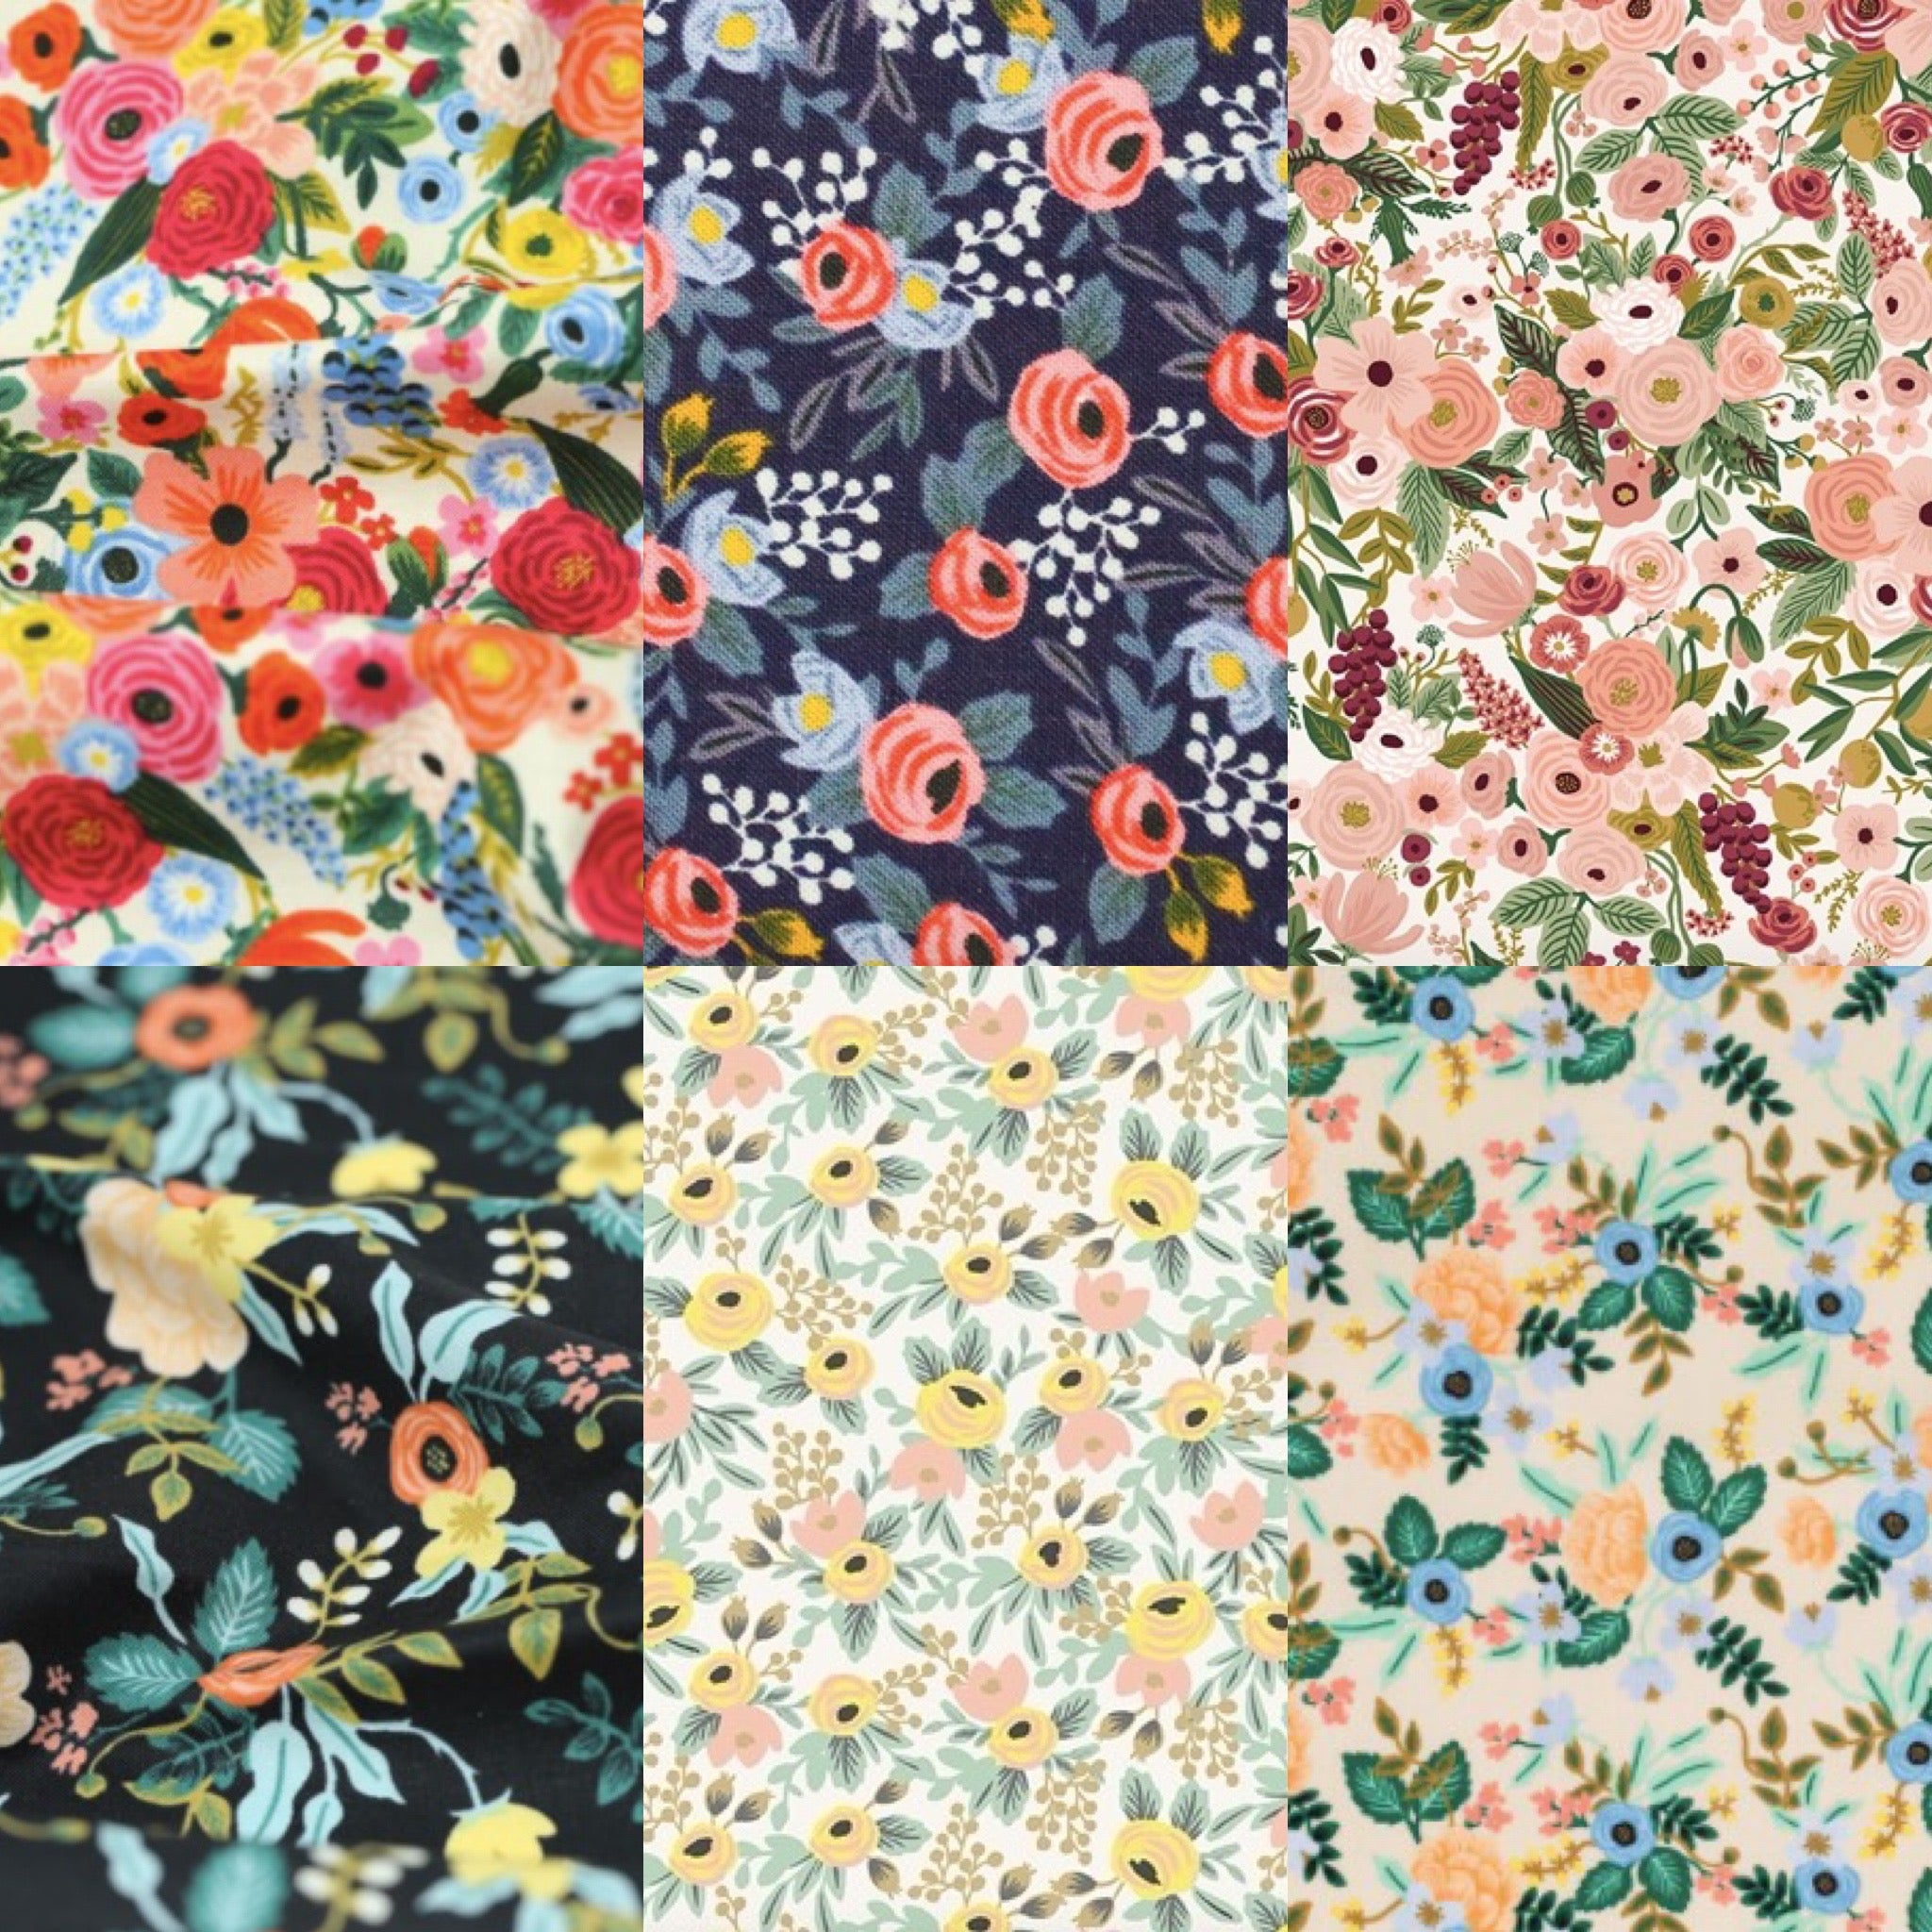 Floral Siding - Eventide Pennant Co.